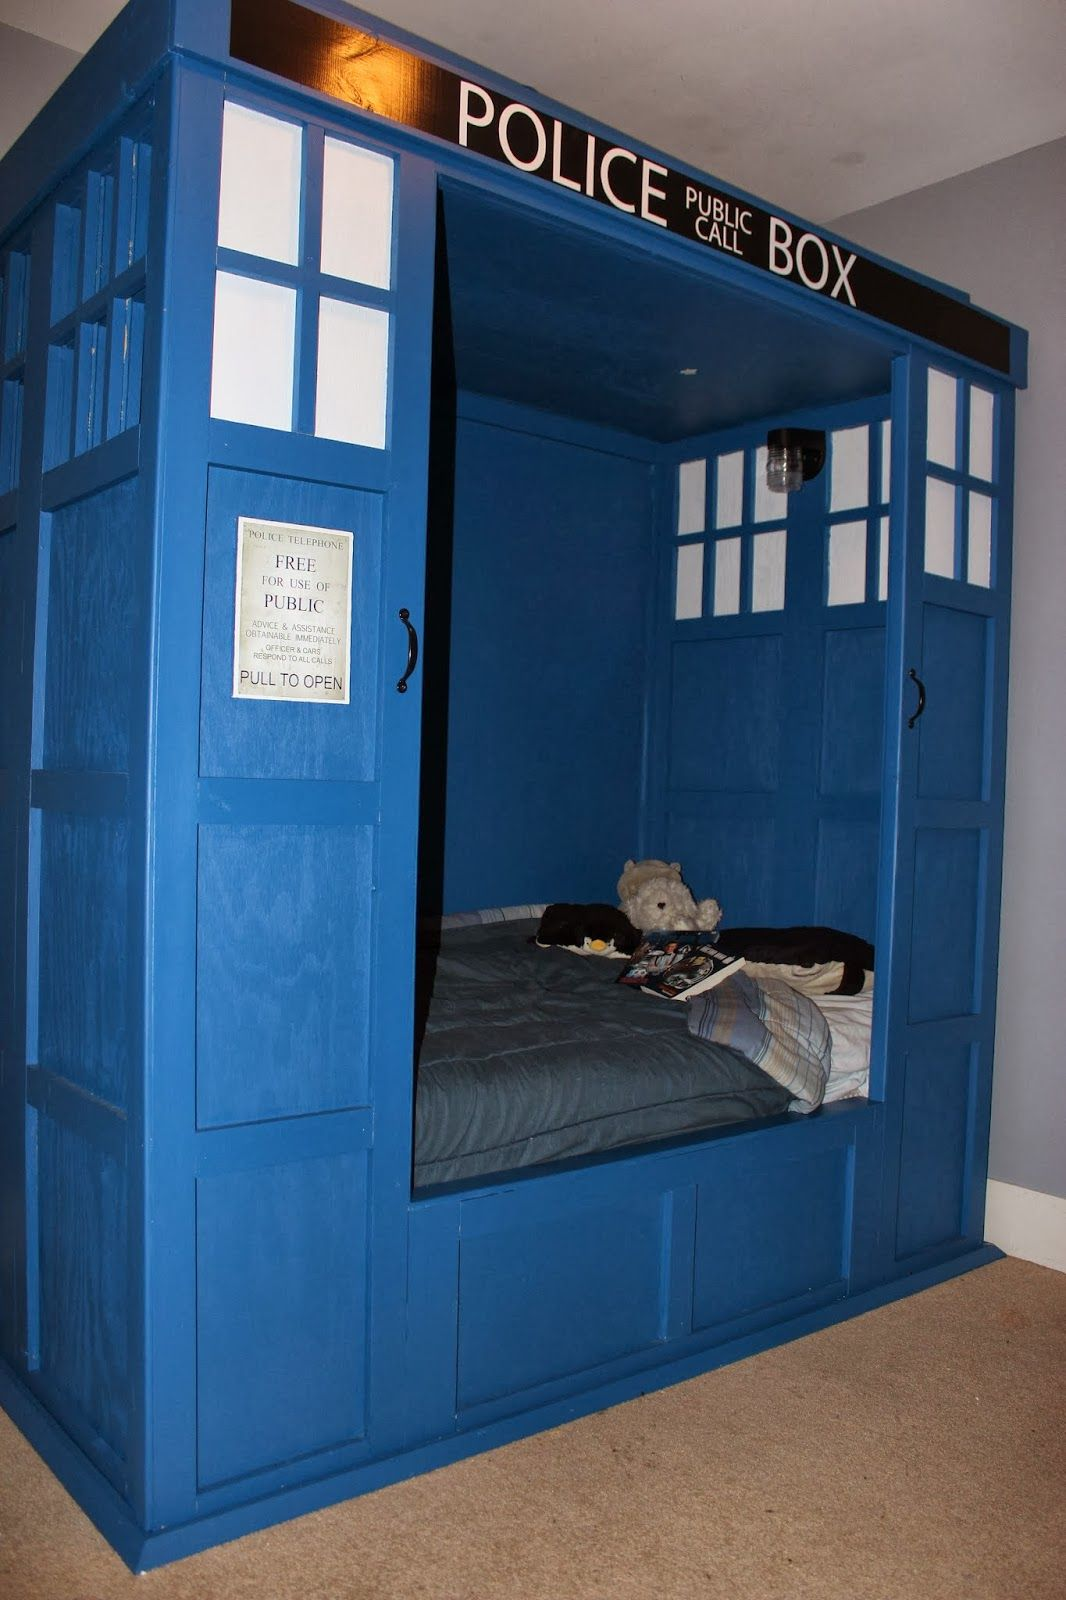 34 Best My Room! Images On Pinterest | Bedroom Ideas, Dr Who And The Doctor